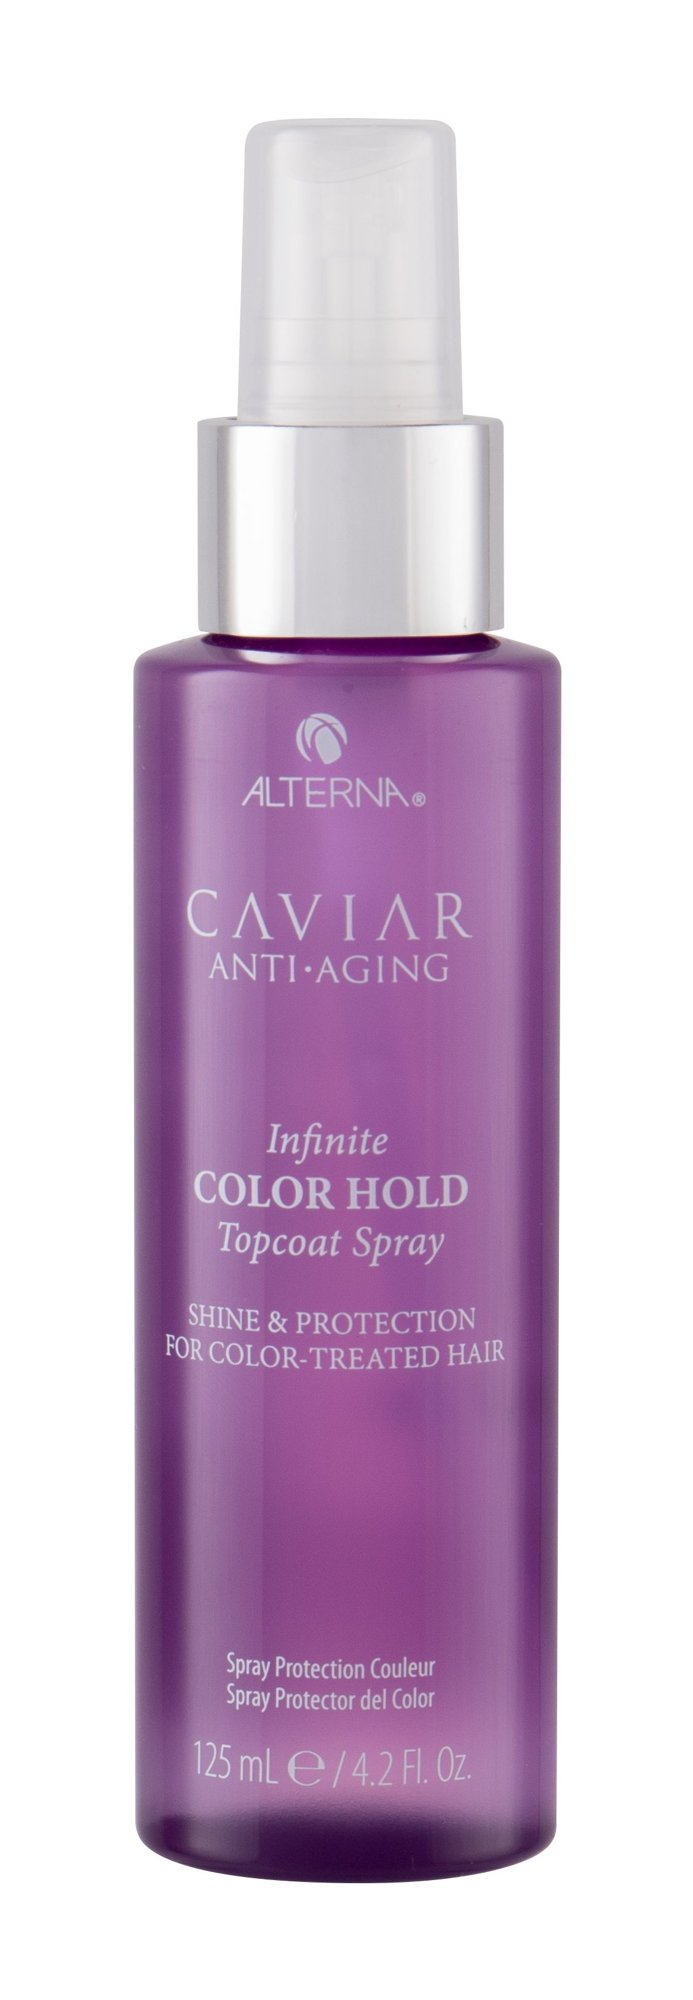 Alterna Caviar Anti-Aging Hair Color 125ml